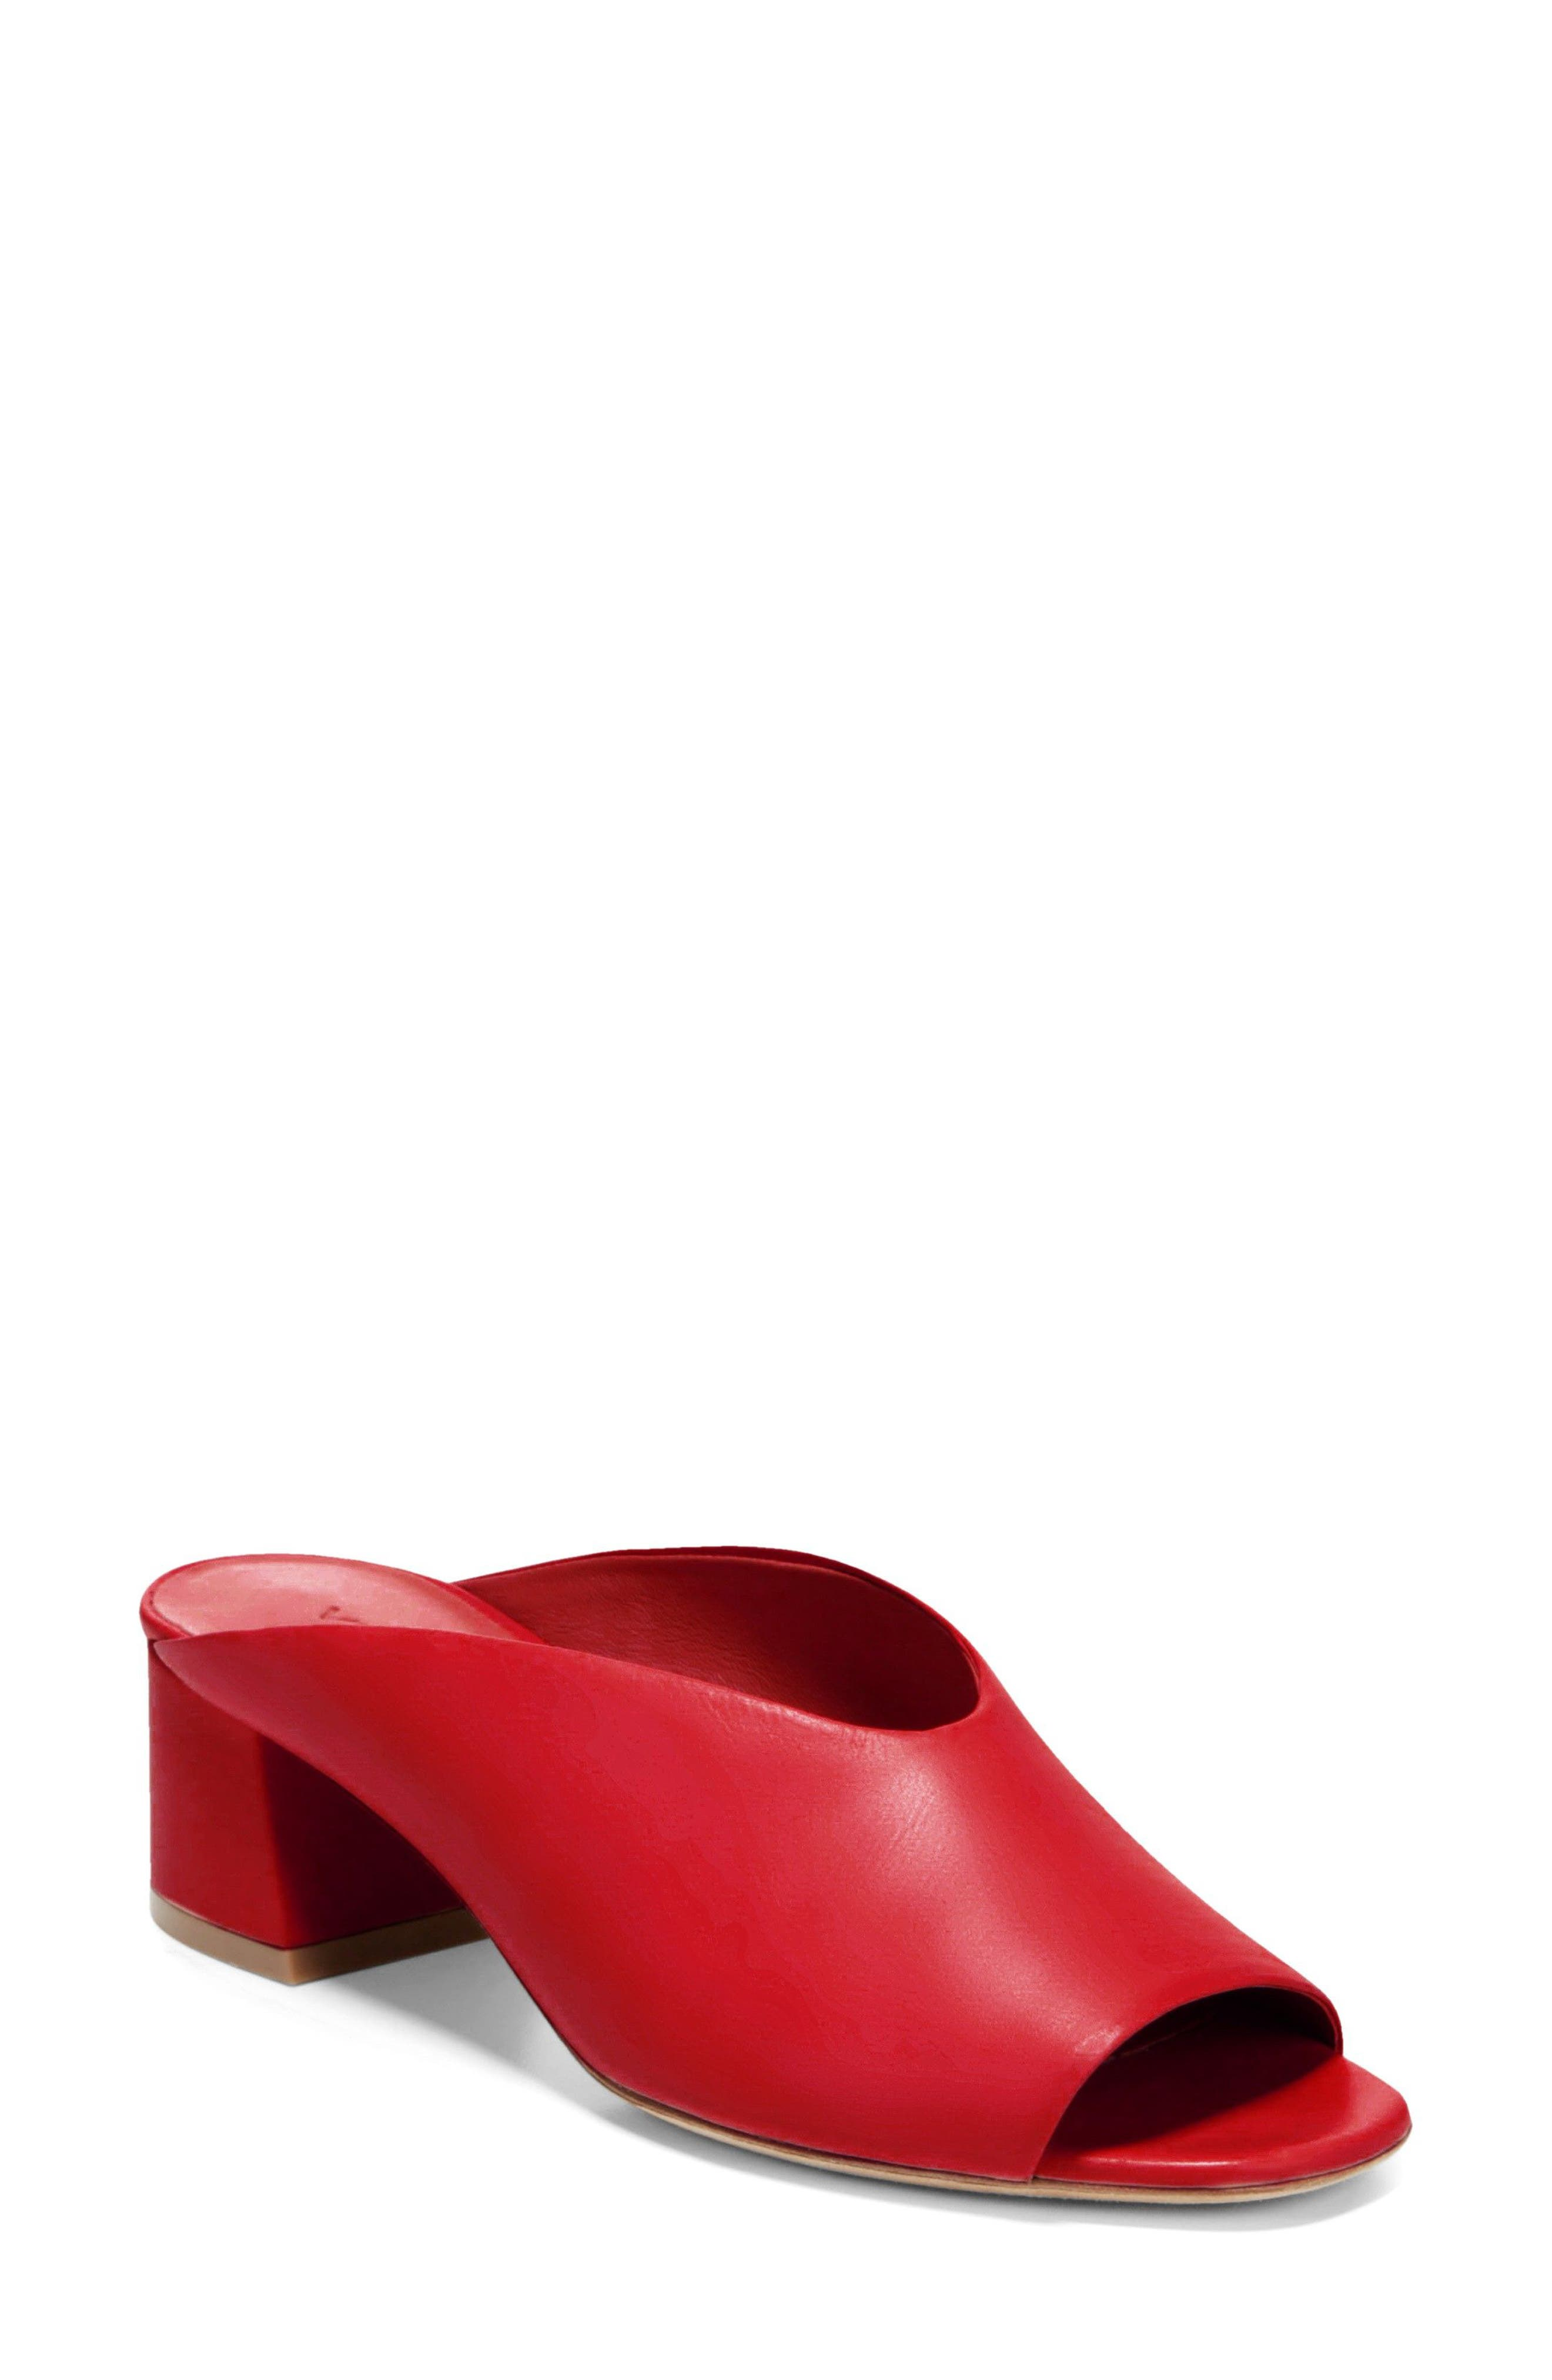 Cachet Sandal,                         Main,                         color, Red